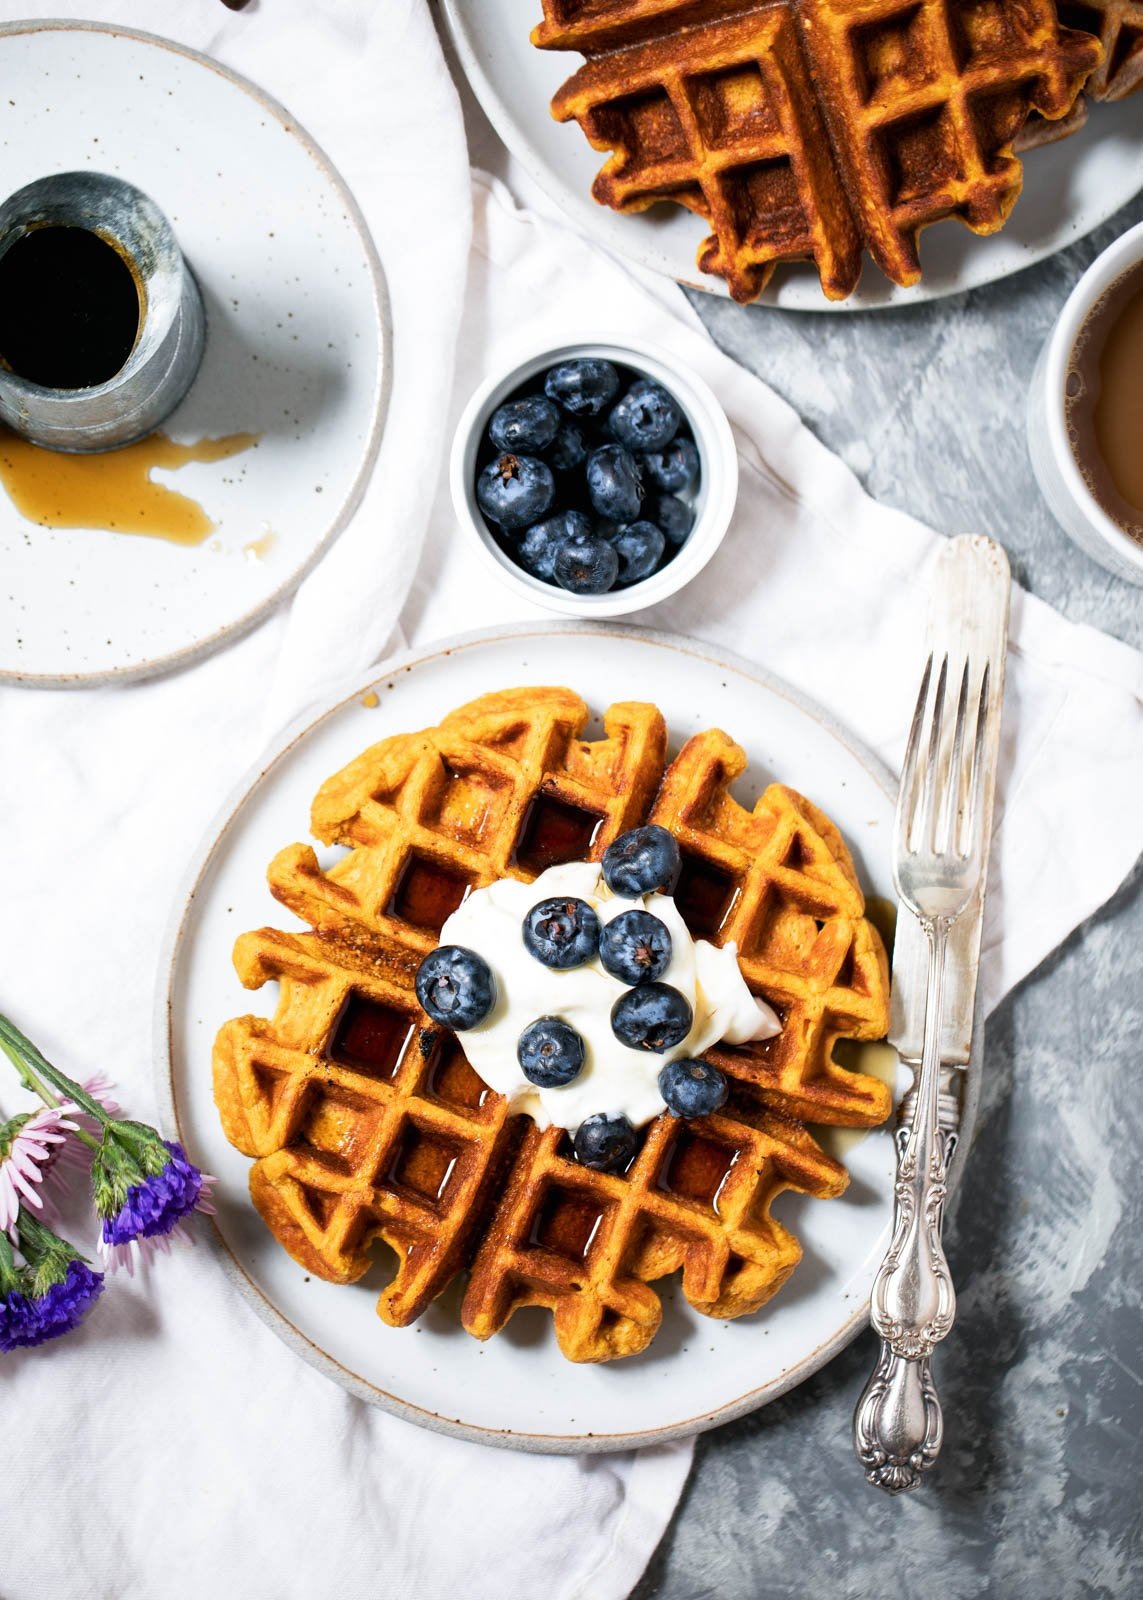 I rounded up 22 pancake & waffle recipes for breakfast, brunch or even breakfast-for-dinner! These are the best, cozy recipes for your weekend.